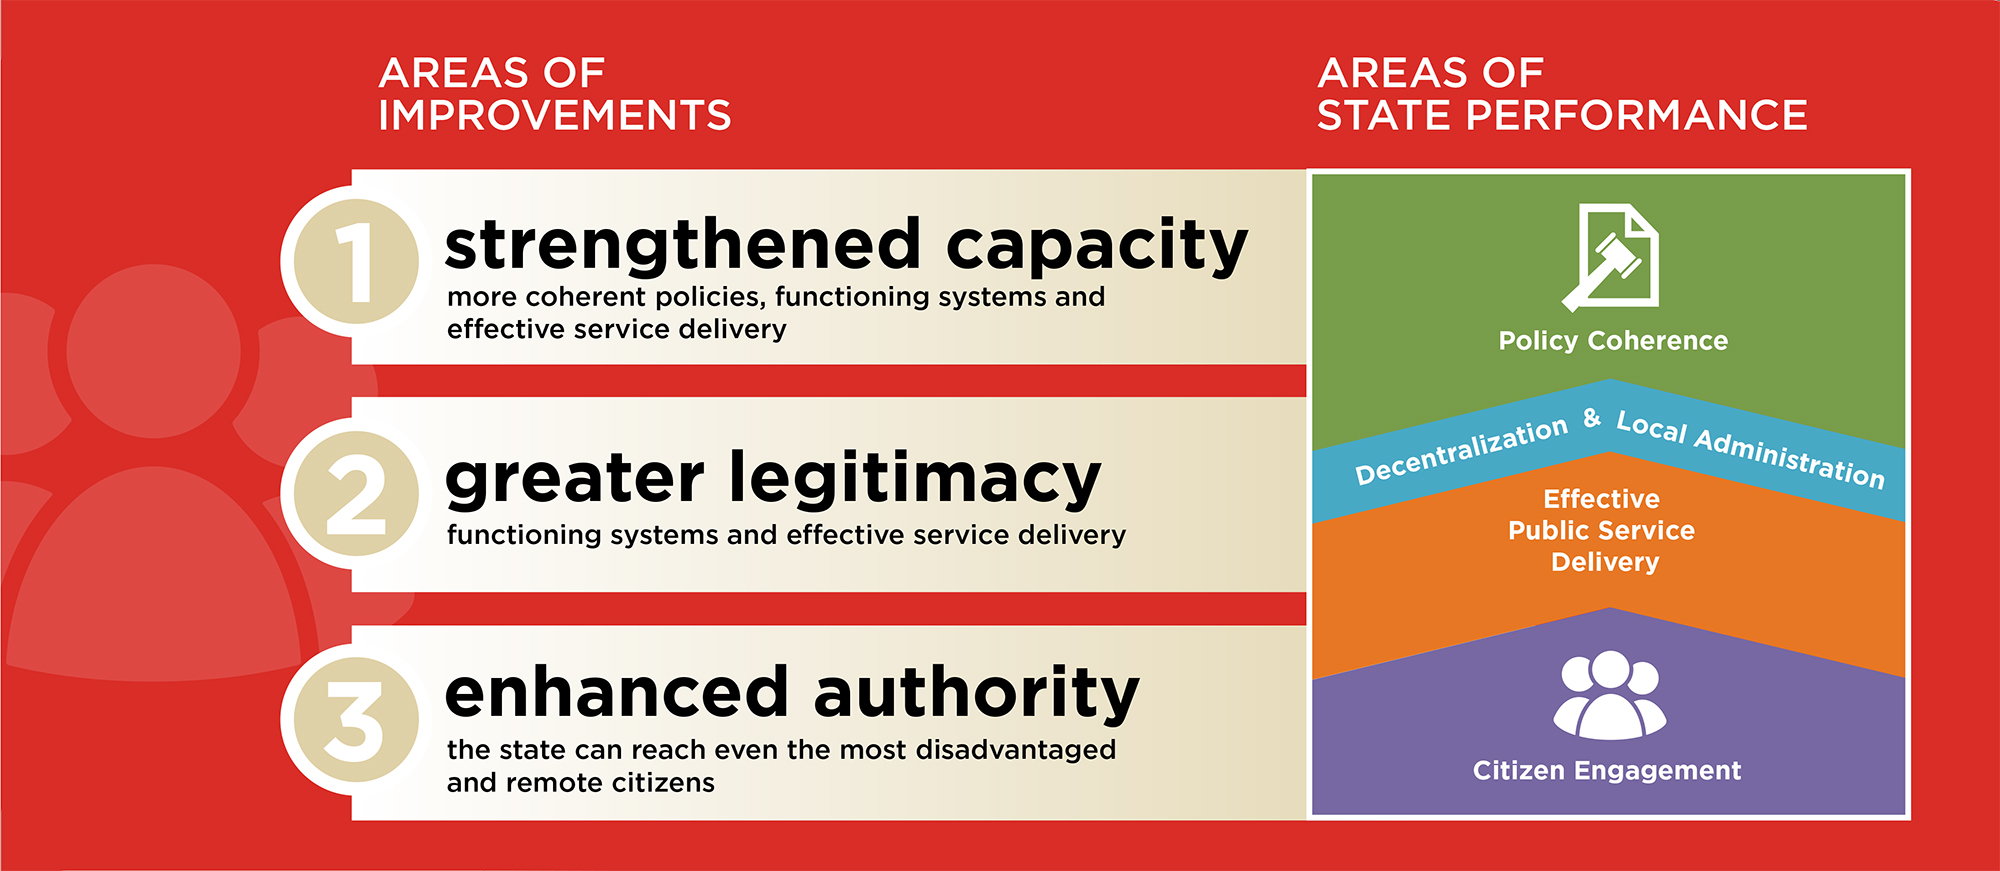 The Results of Governance Initiatives are Measured by Improvements in State Performance